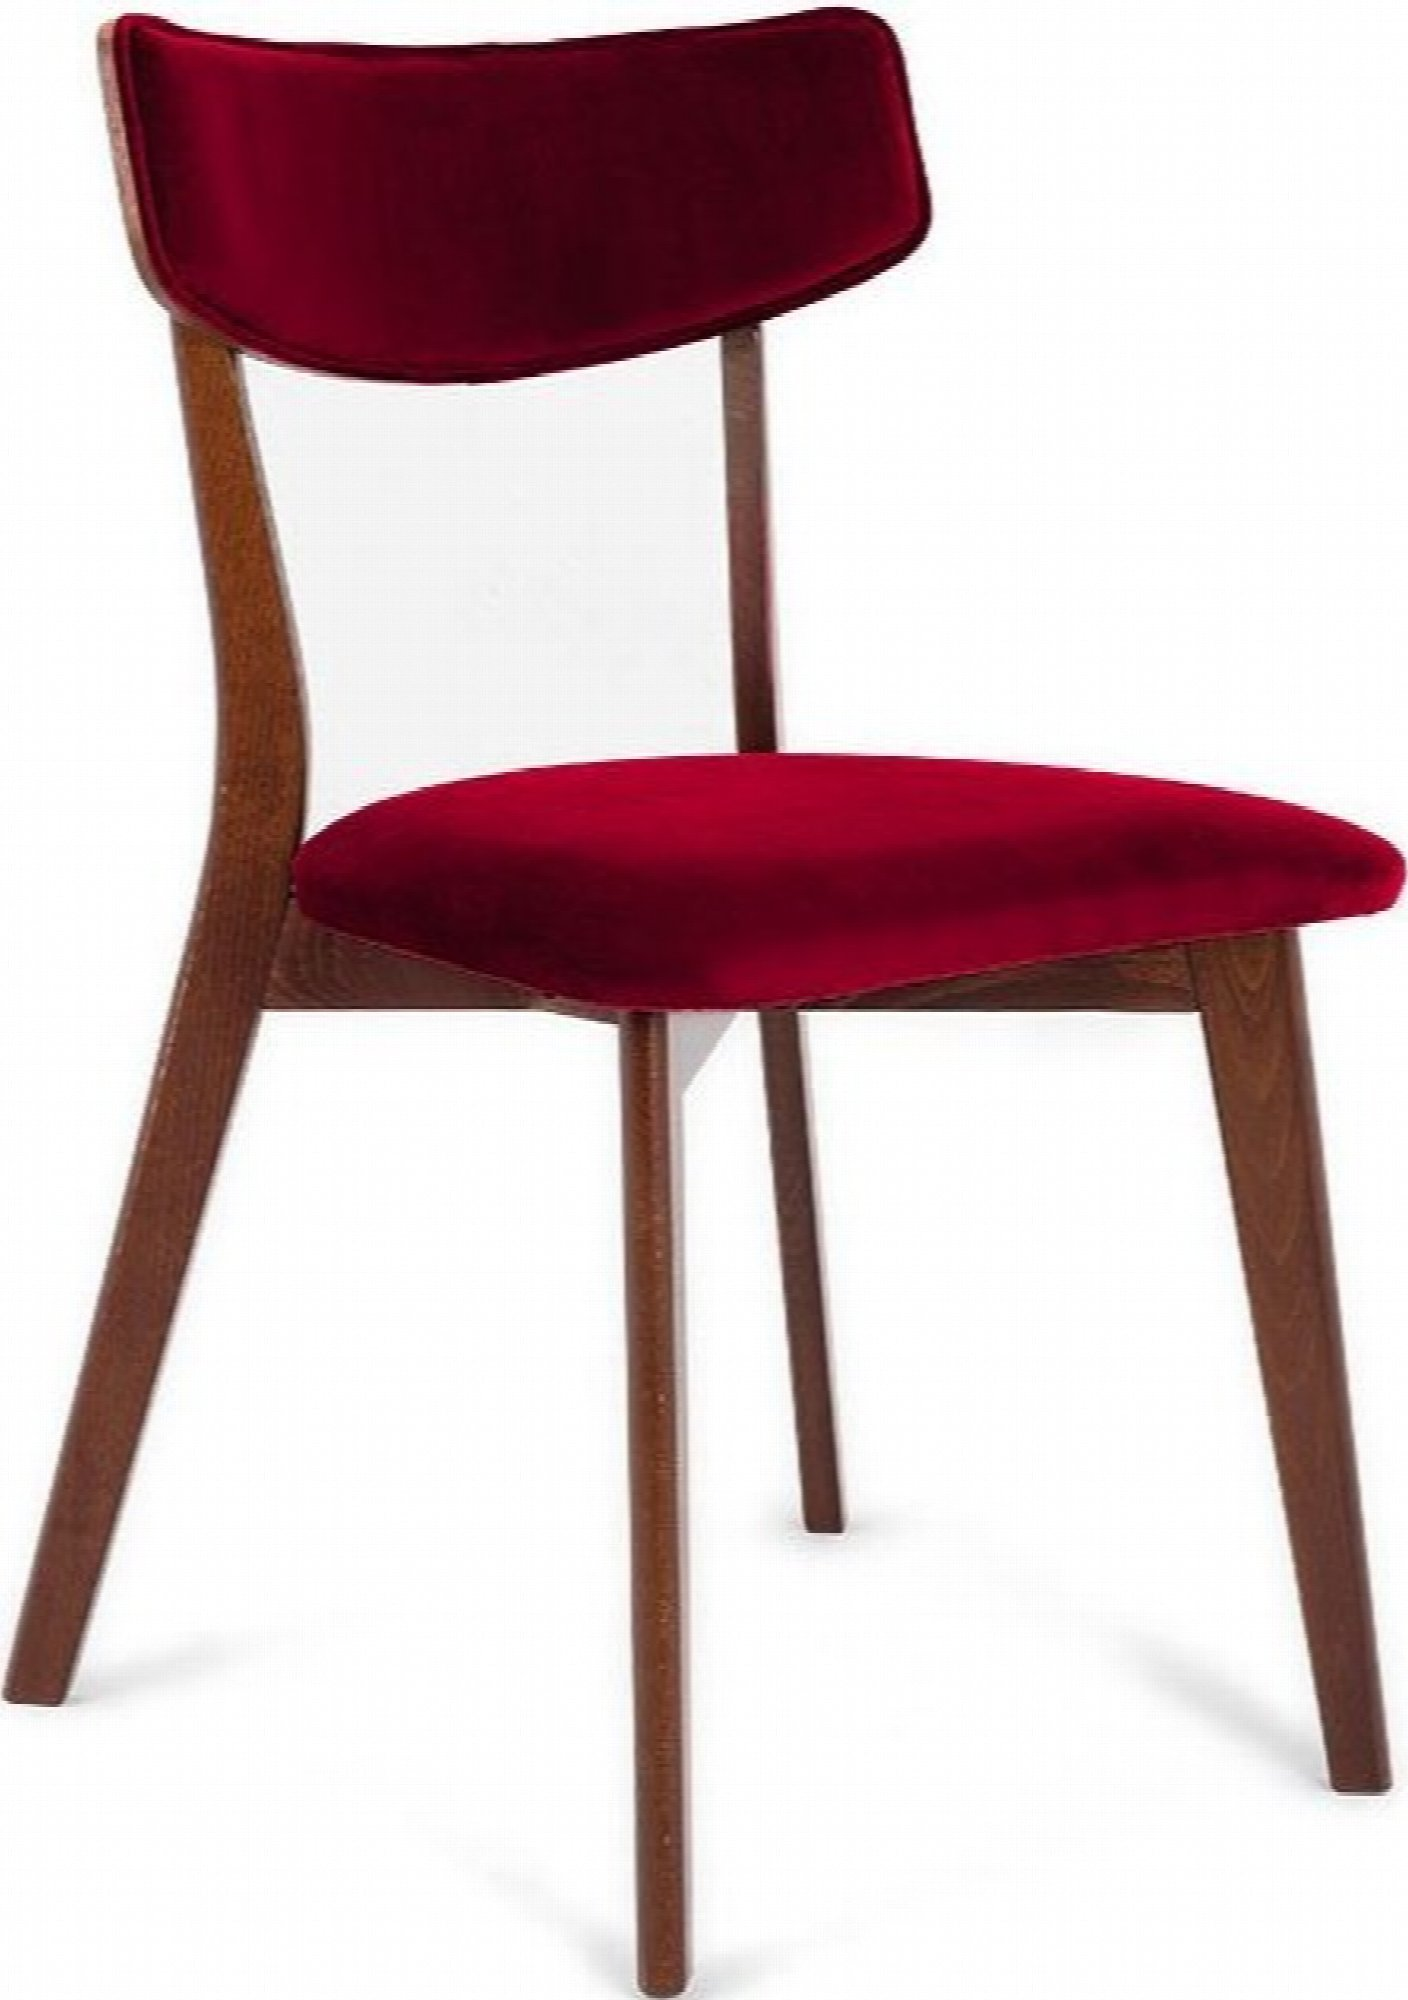 Chaise design tradition velours rouge pieds noyer